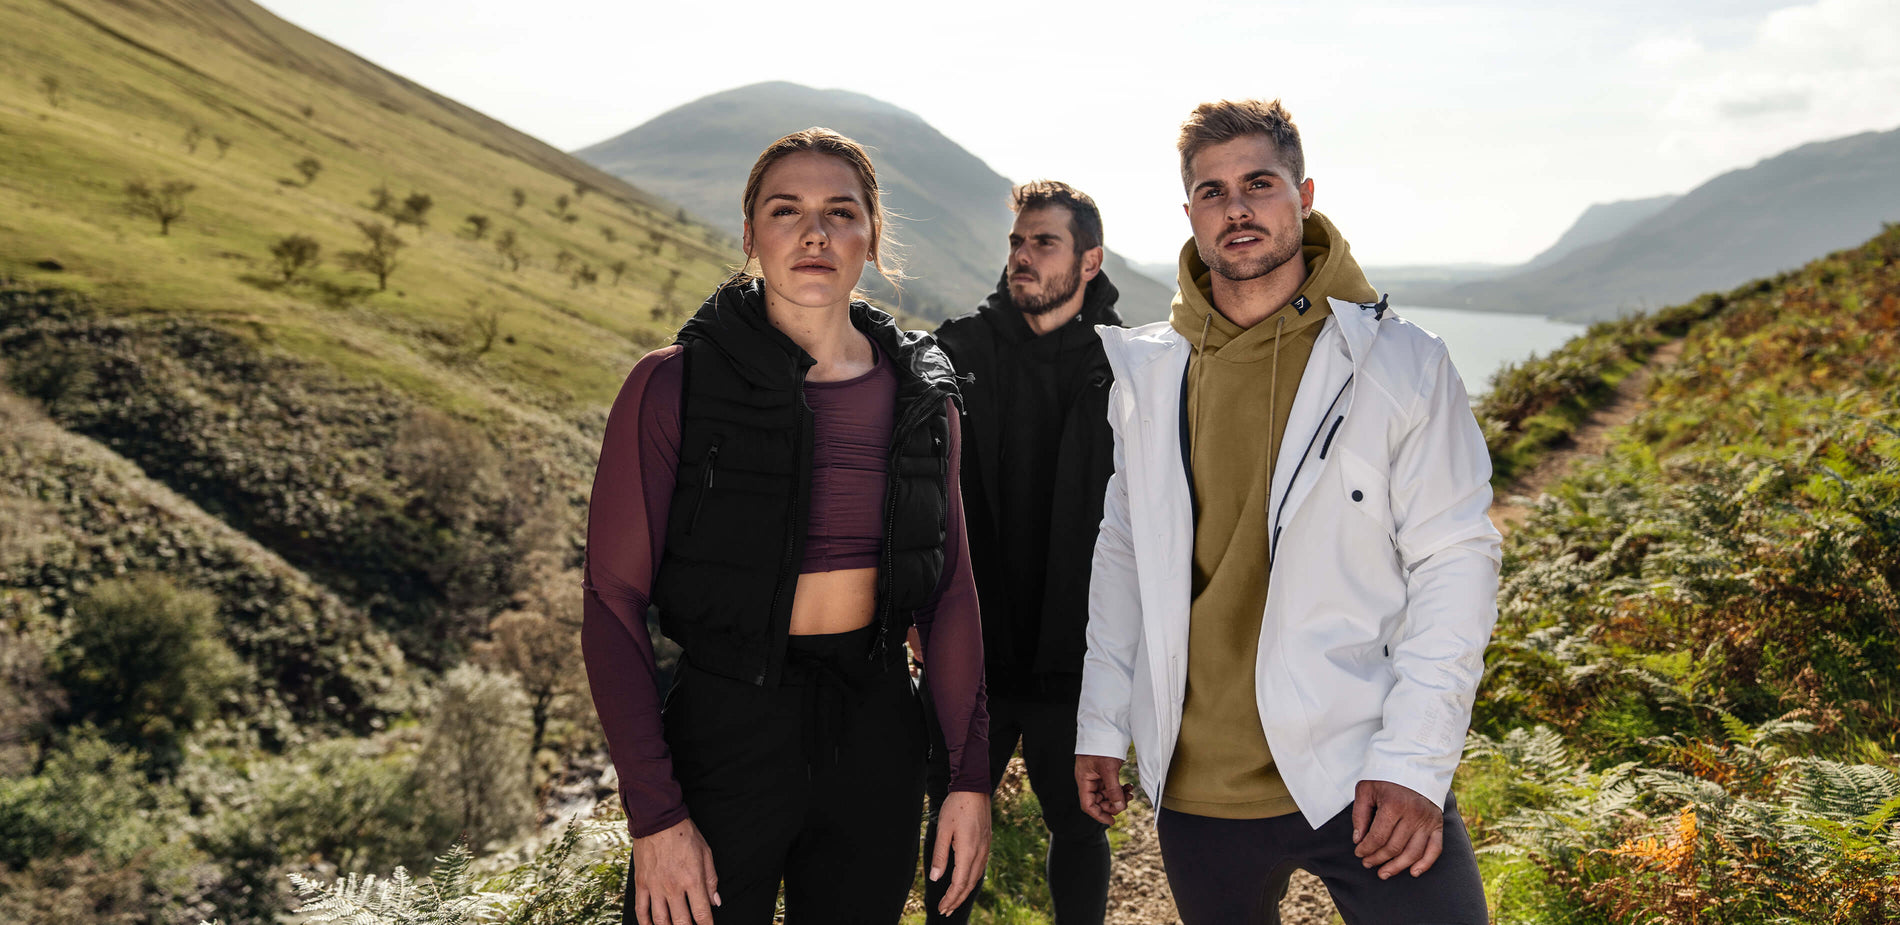 : Three Gymshark athletes modelling outerwear in front of a scenic back drop of Lake District. The banner also demonstrates men's and women's layered clothing for cold environment.